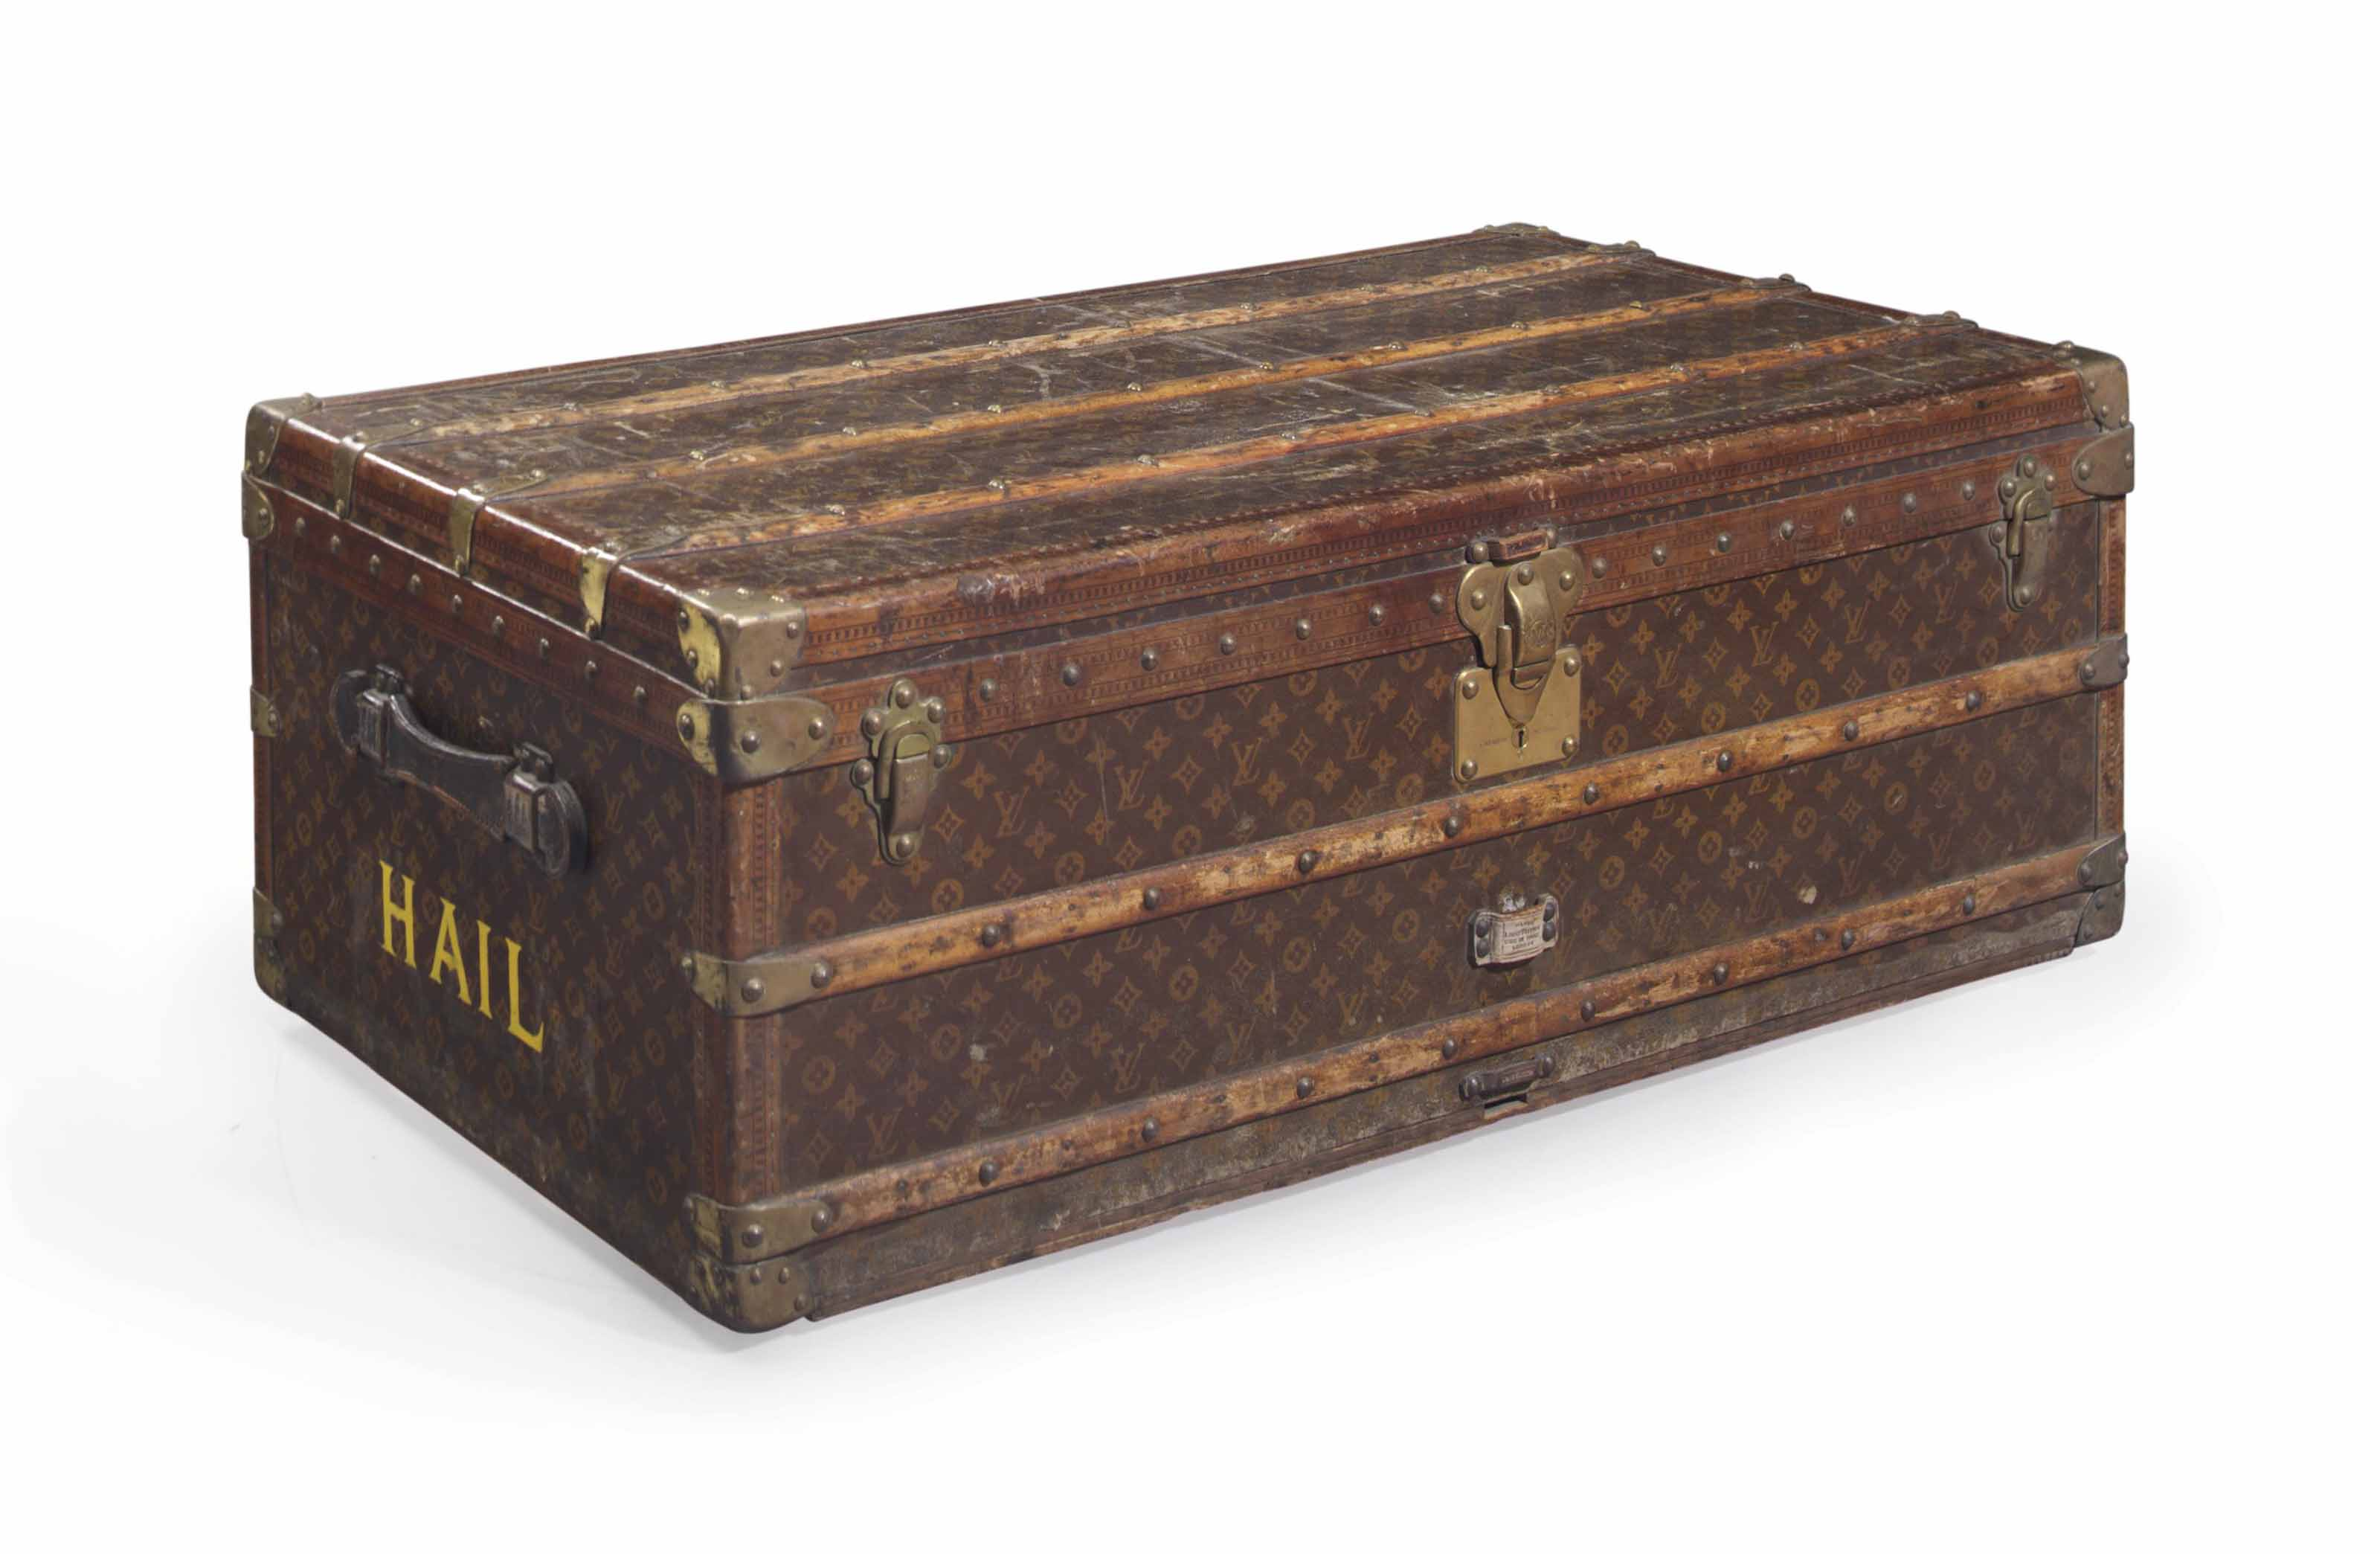 A LARGE LOUIS VUITTON TRAVELLING TRUNK